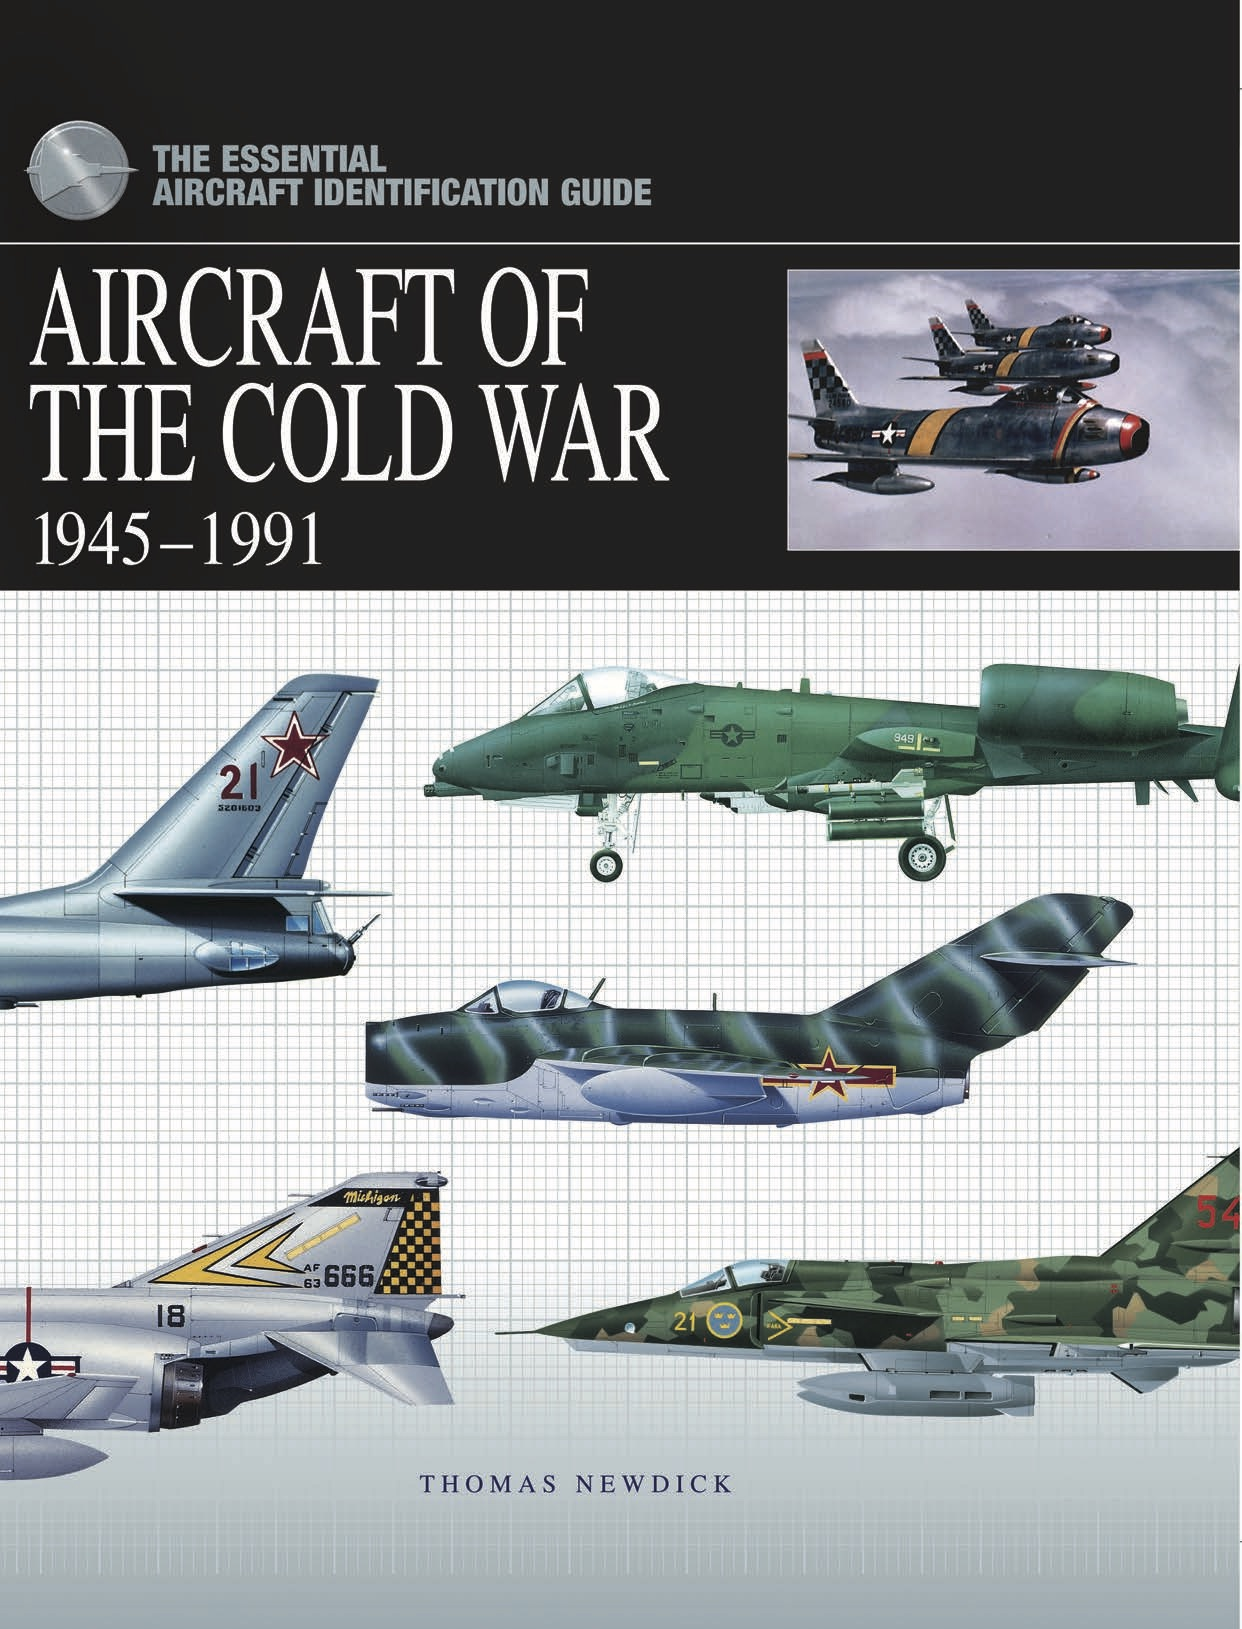 The Essential Aircraft Identification Guide: Aircraft of the Cold War 1945-1991